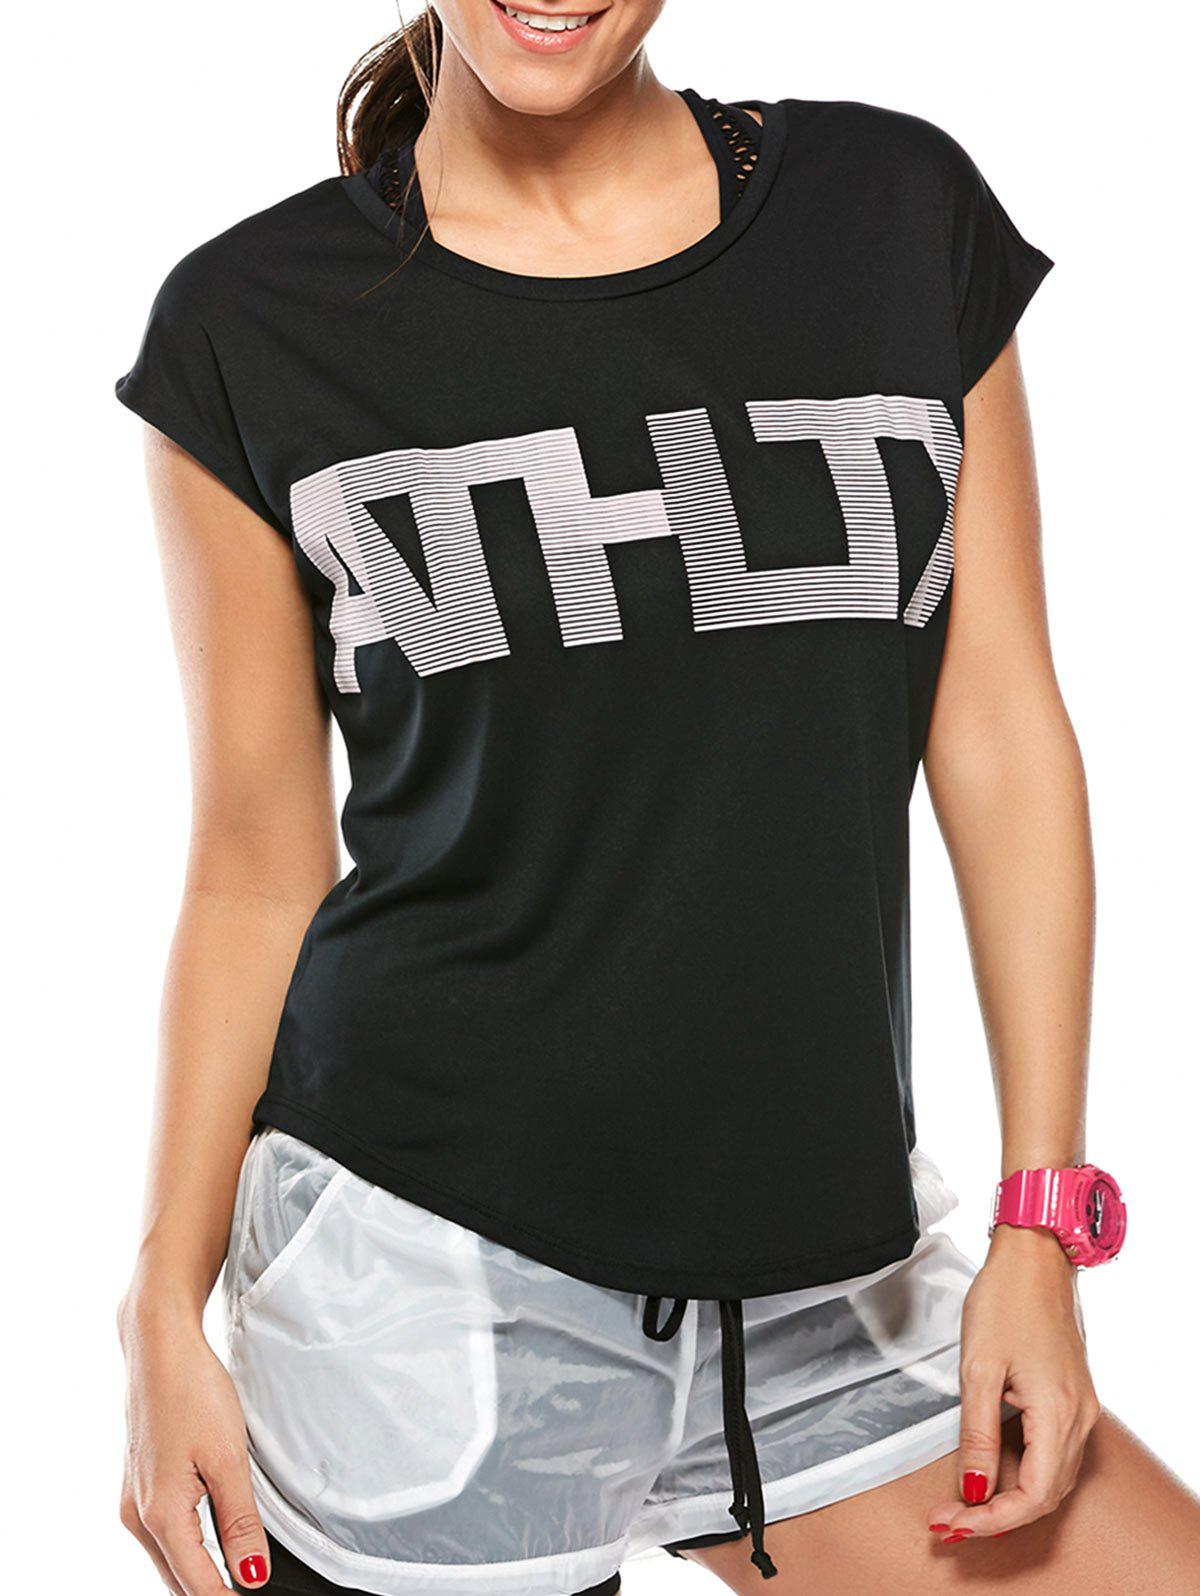 Cheap Asymmetric Workout Letter Graphic Gym T-Shirt